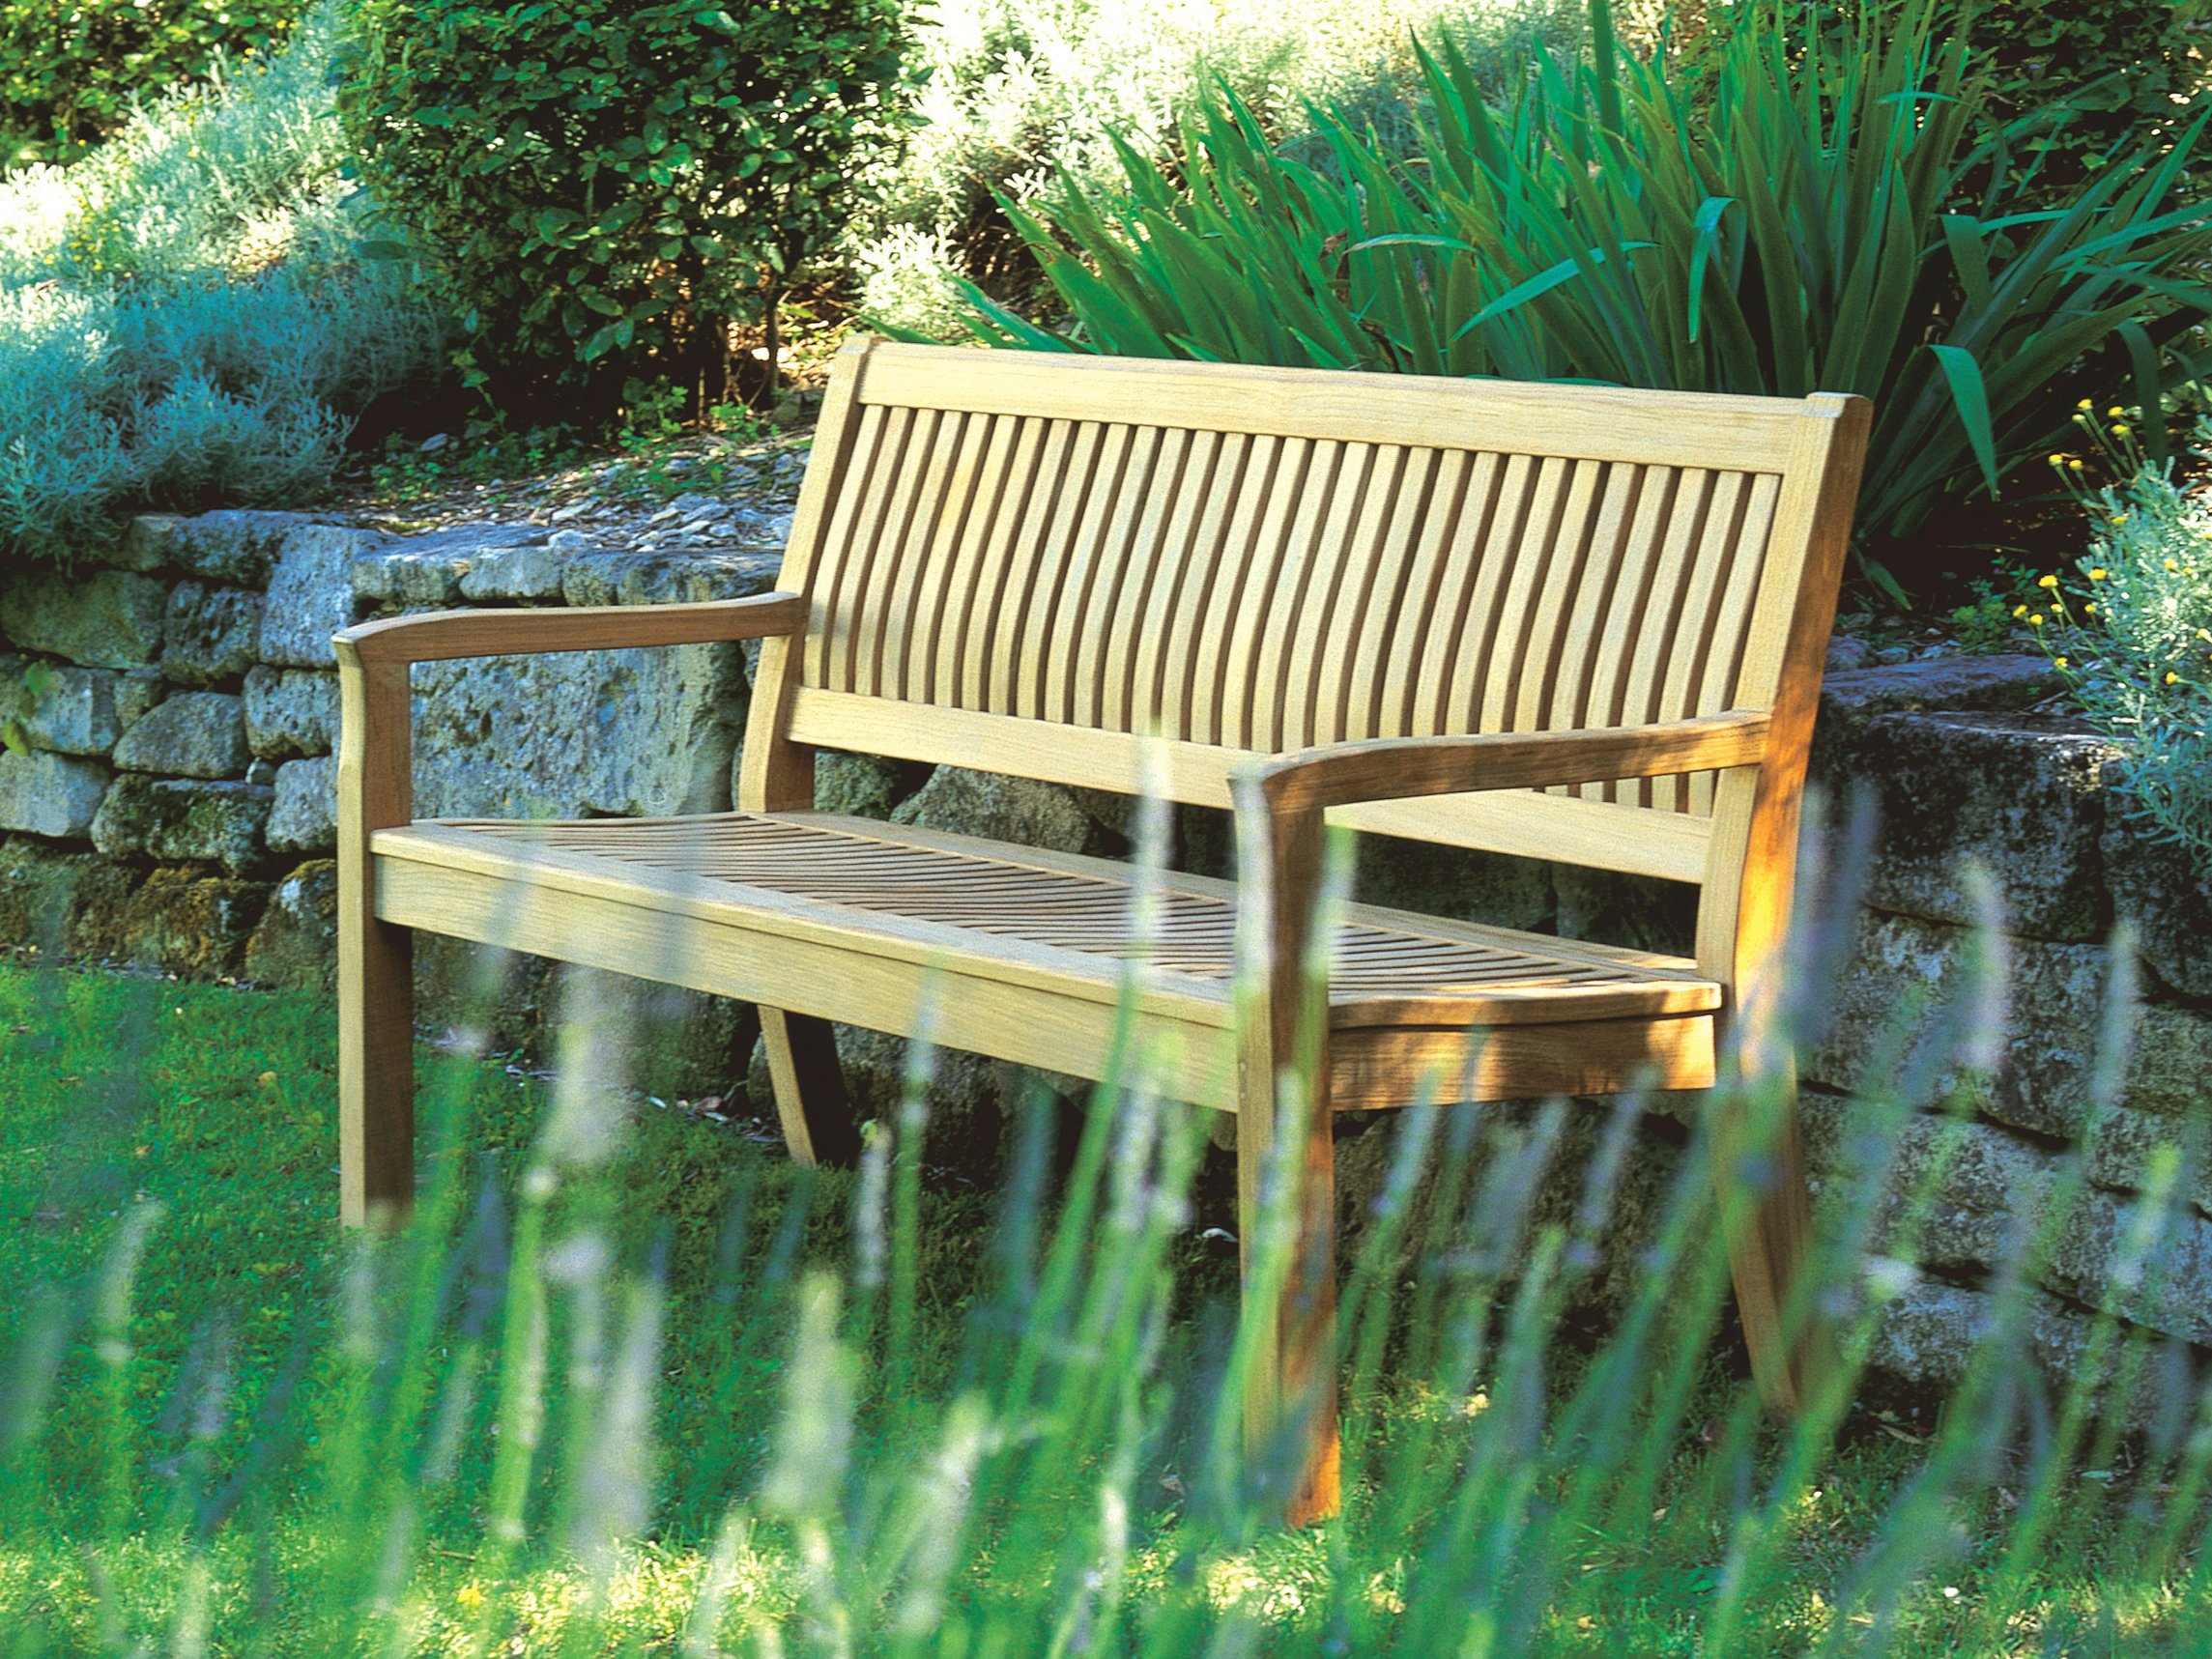 Kingston banc de jardin by gloster design povl eskildsen for Banc de jardin design